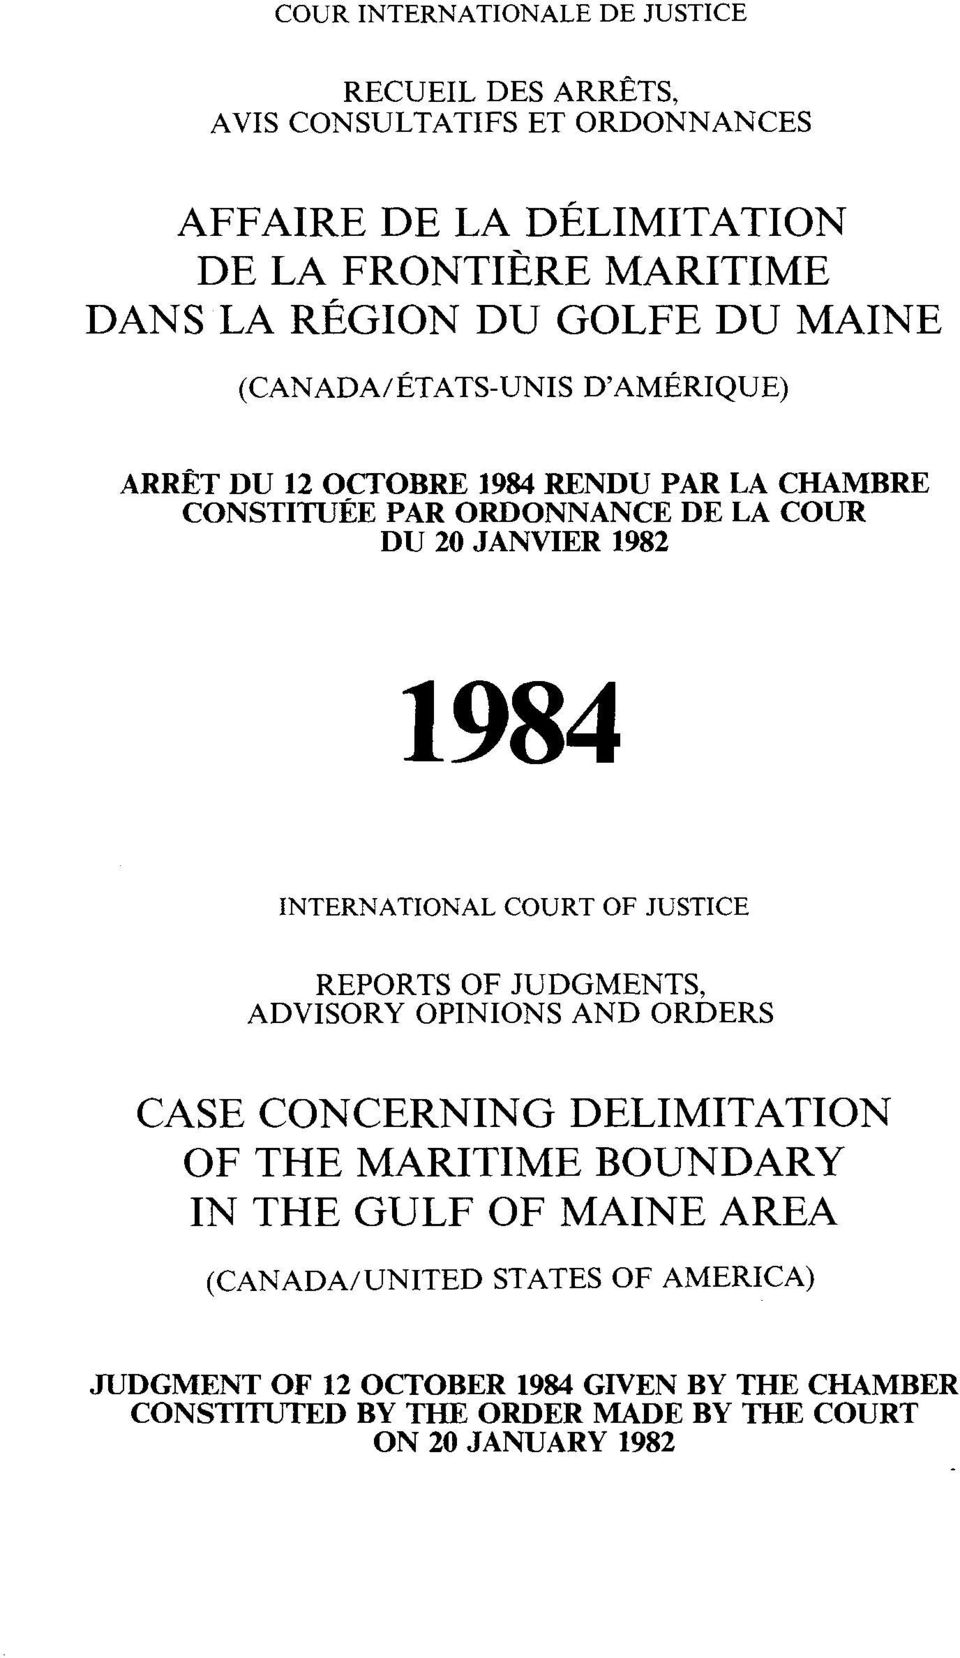 COURT OF JUSTICE REPORTS OF JUDGMENTS, ADVISORY OPINIONS AND ORDERS CASE CONCERNING DELIMITATION OF THE MARITIME BOUNDARY IN THE GULF OF MAINE